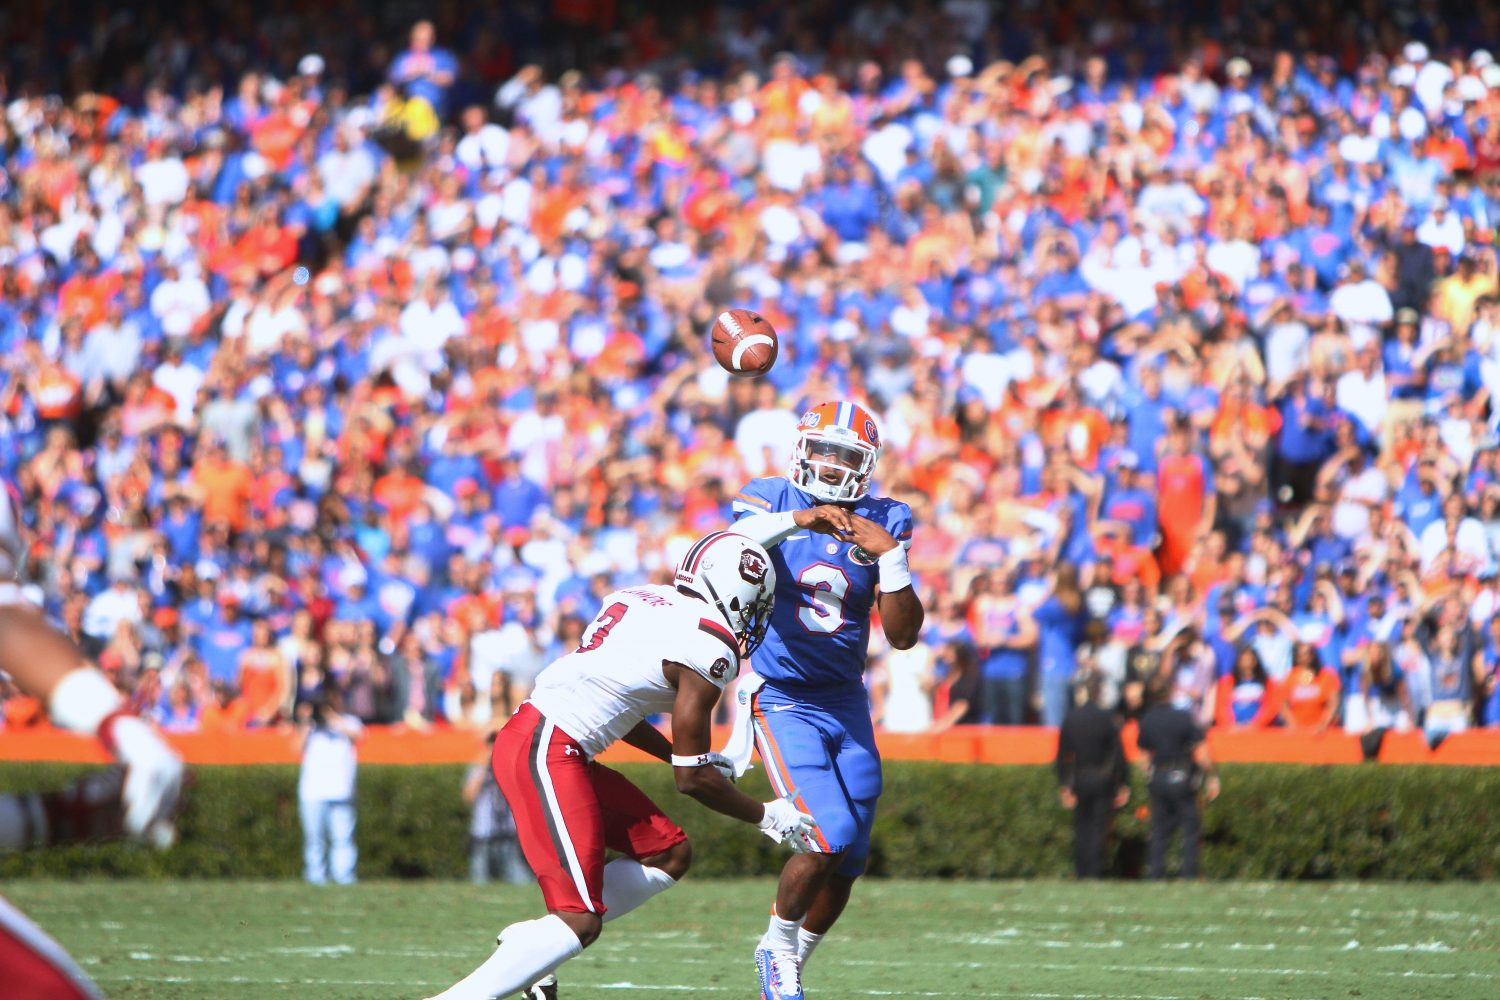 Florida quarter back Treon Harris rolls out to his left, looking for a receiver downfield.